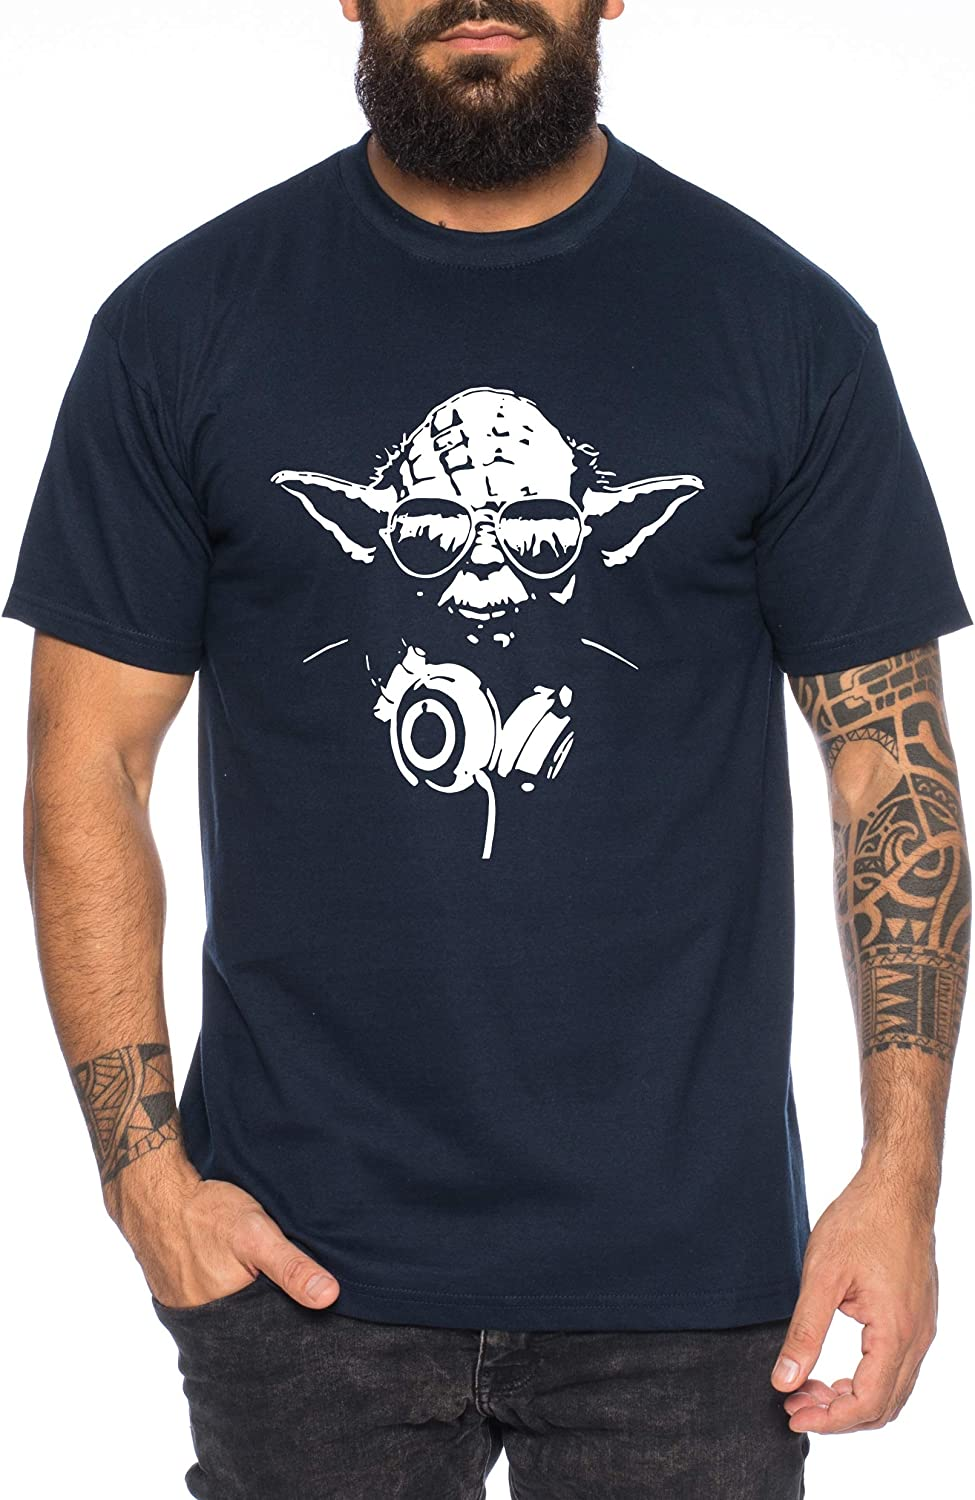 Yoda T-Shirt pour Homme DJ Yoda Jedi Ritter The Empire Turntables Music Rave House Trance Techno Geek